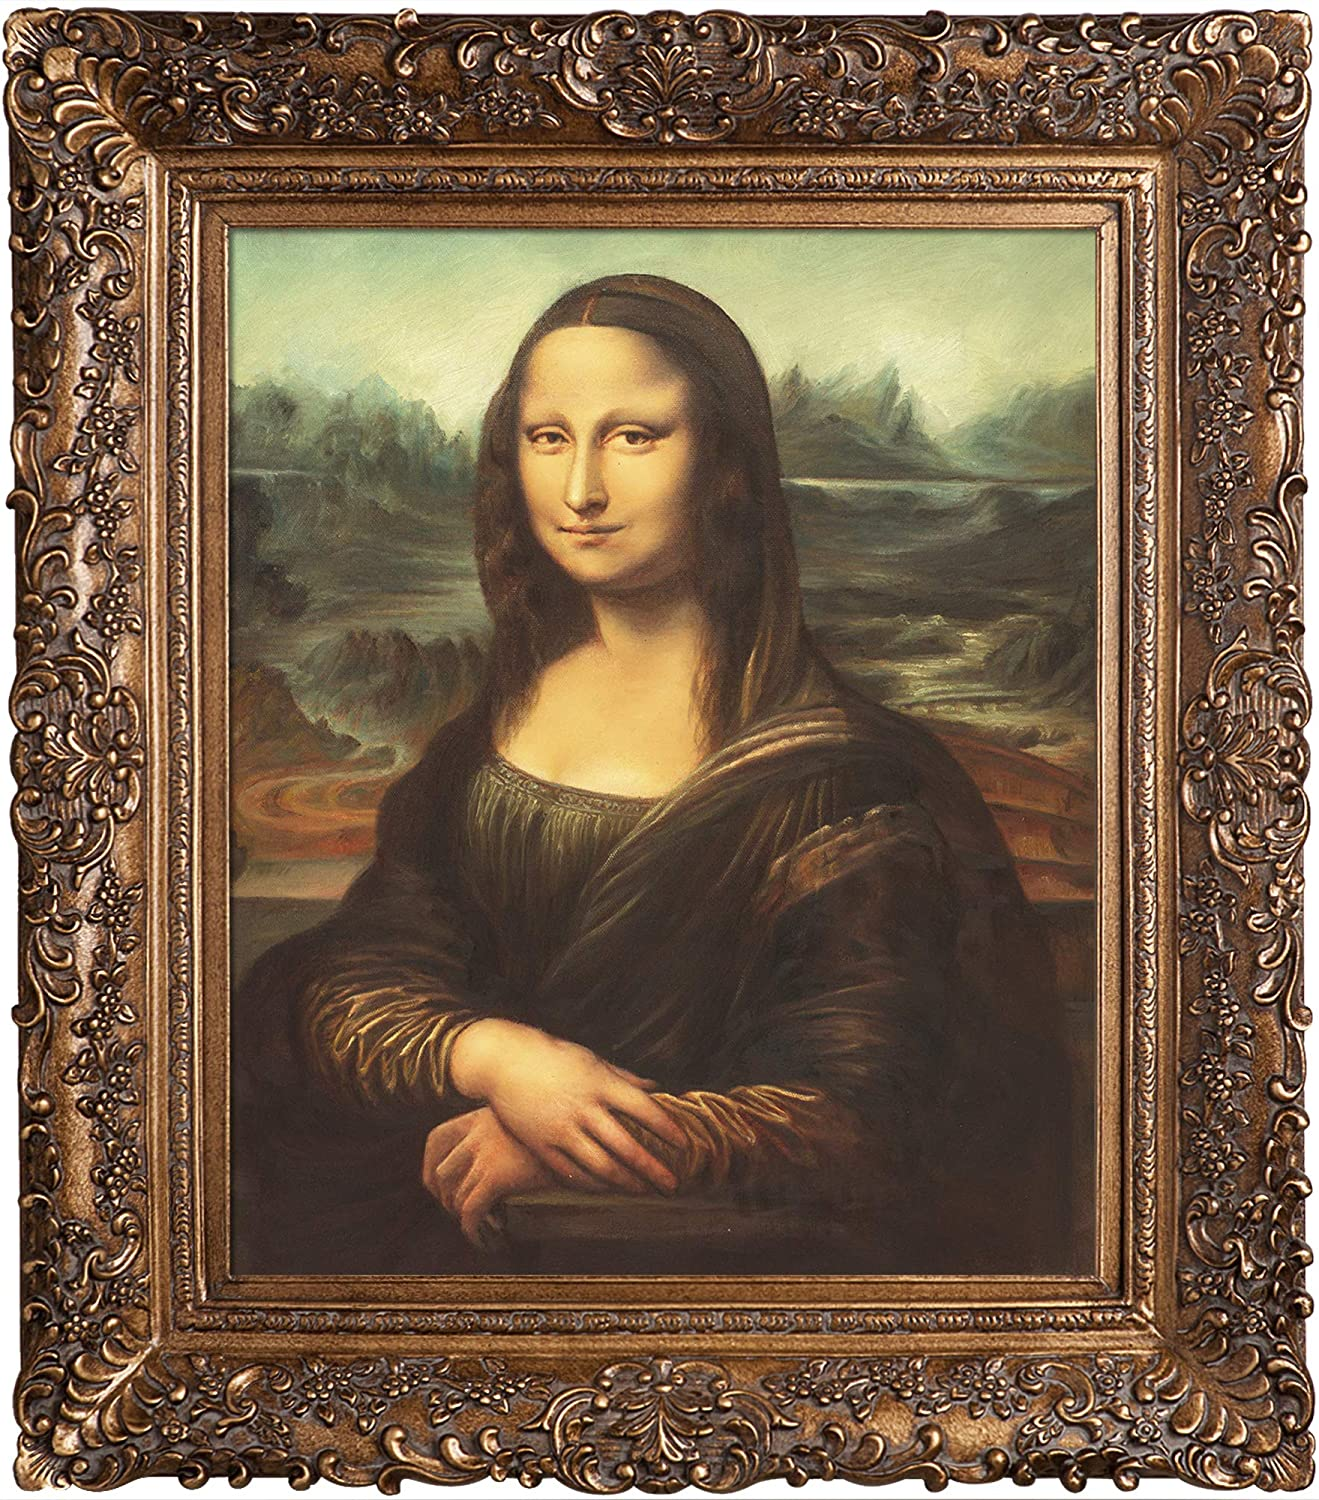 overstockArt Mona Lisa with San Francisco Mall Burgeon Gold Frame by Oil Philadelphia Mall D Painting